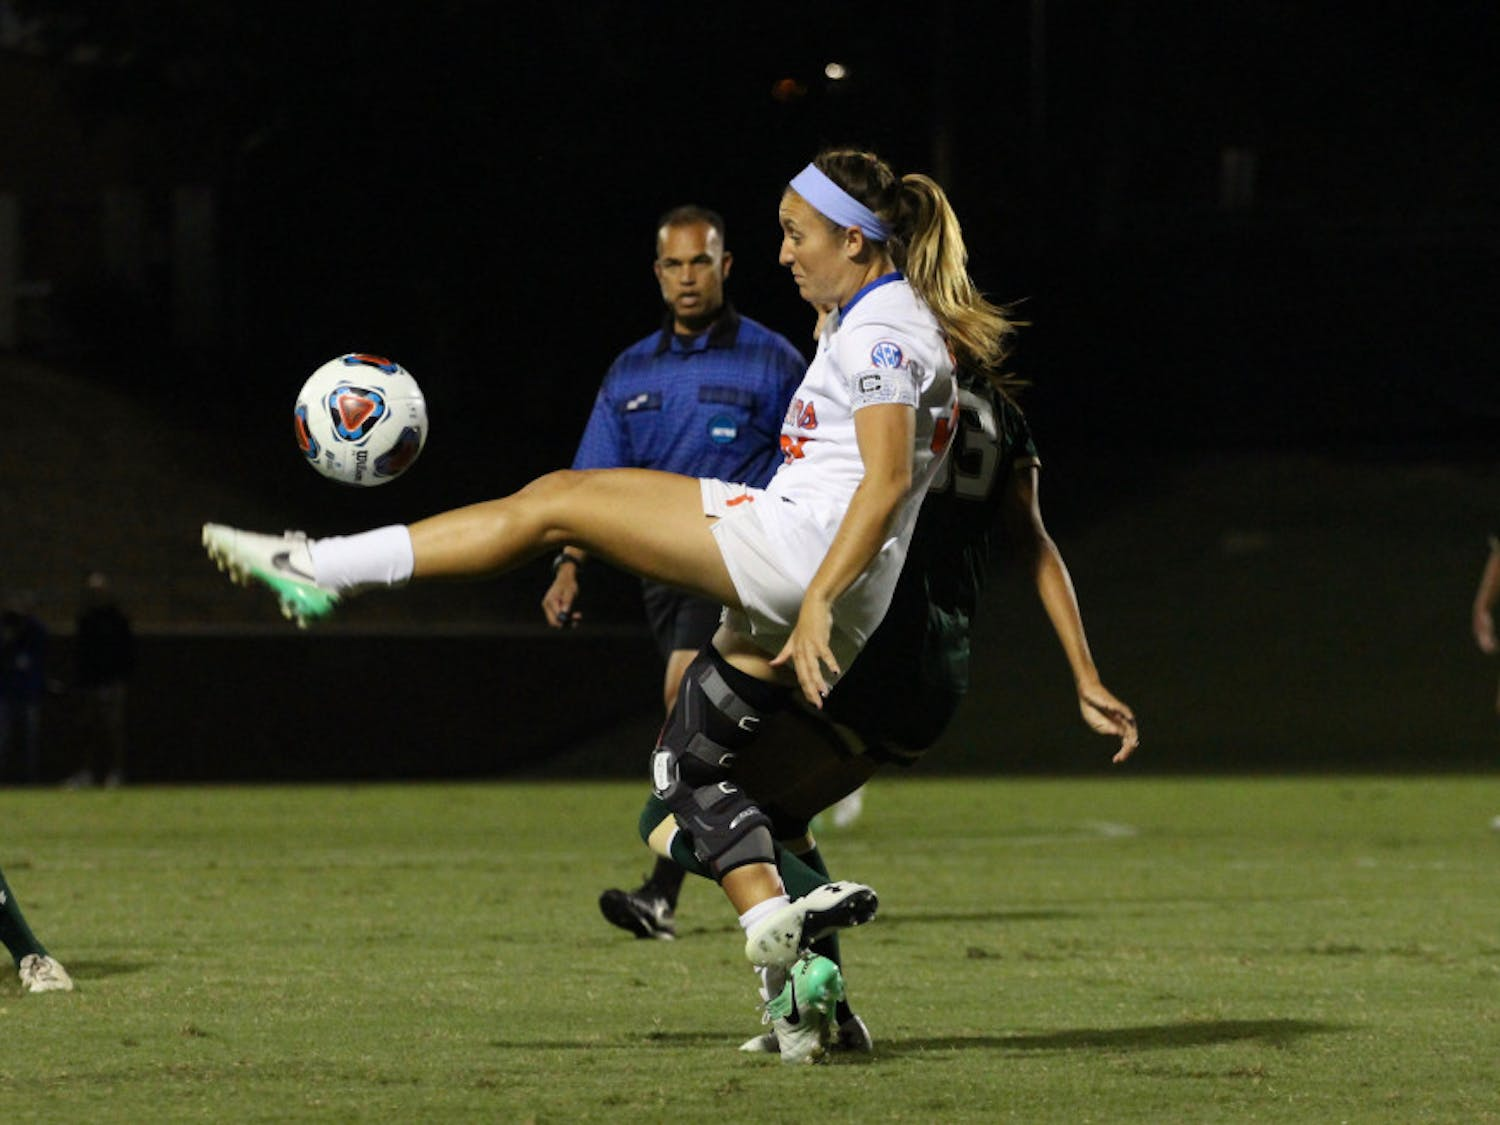 Gabby Seiler was recruited by Cameron Newbauer while he was an assistant coach with Georgia. Nearly nine years later and after leading UF soccer to a 17-7 record and an NCAA quarterfinals appearance, Seiler is finally on his team.